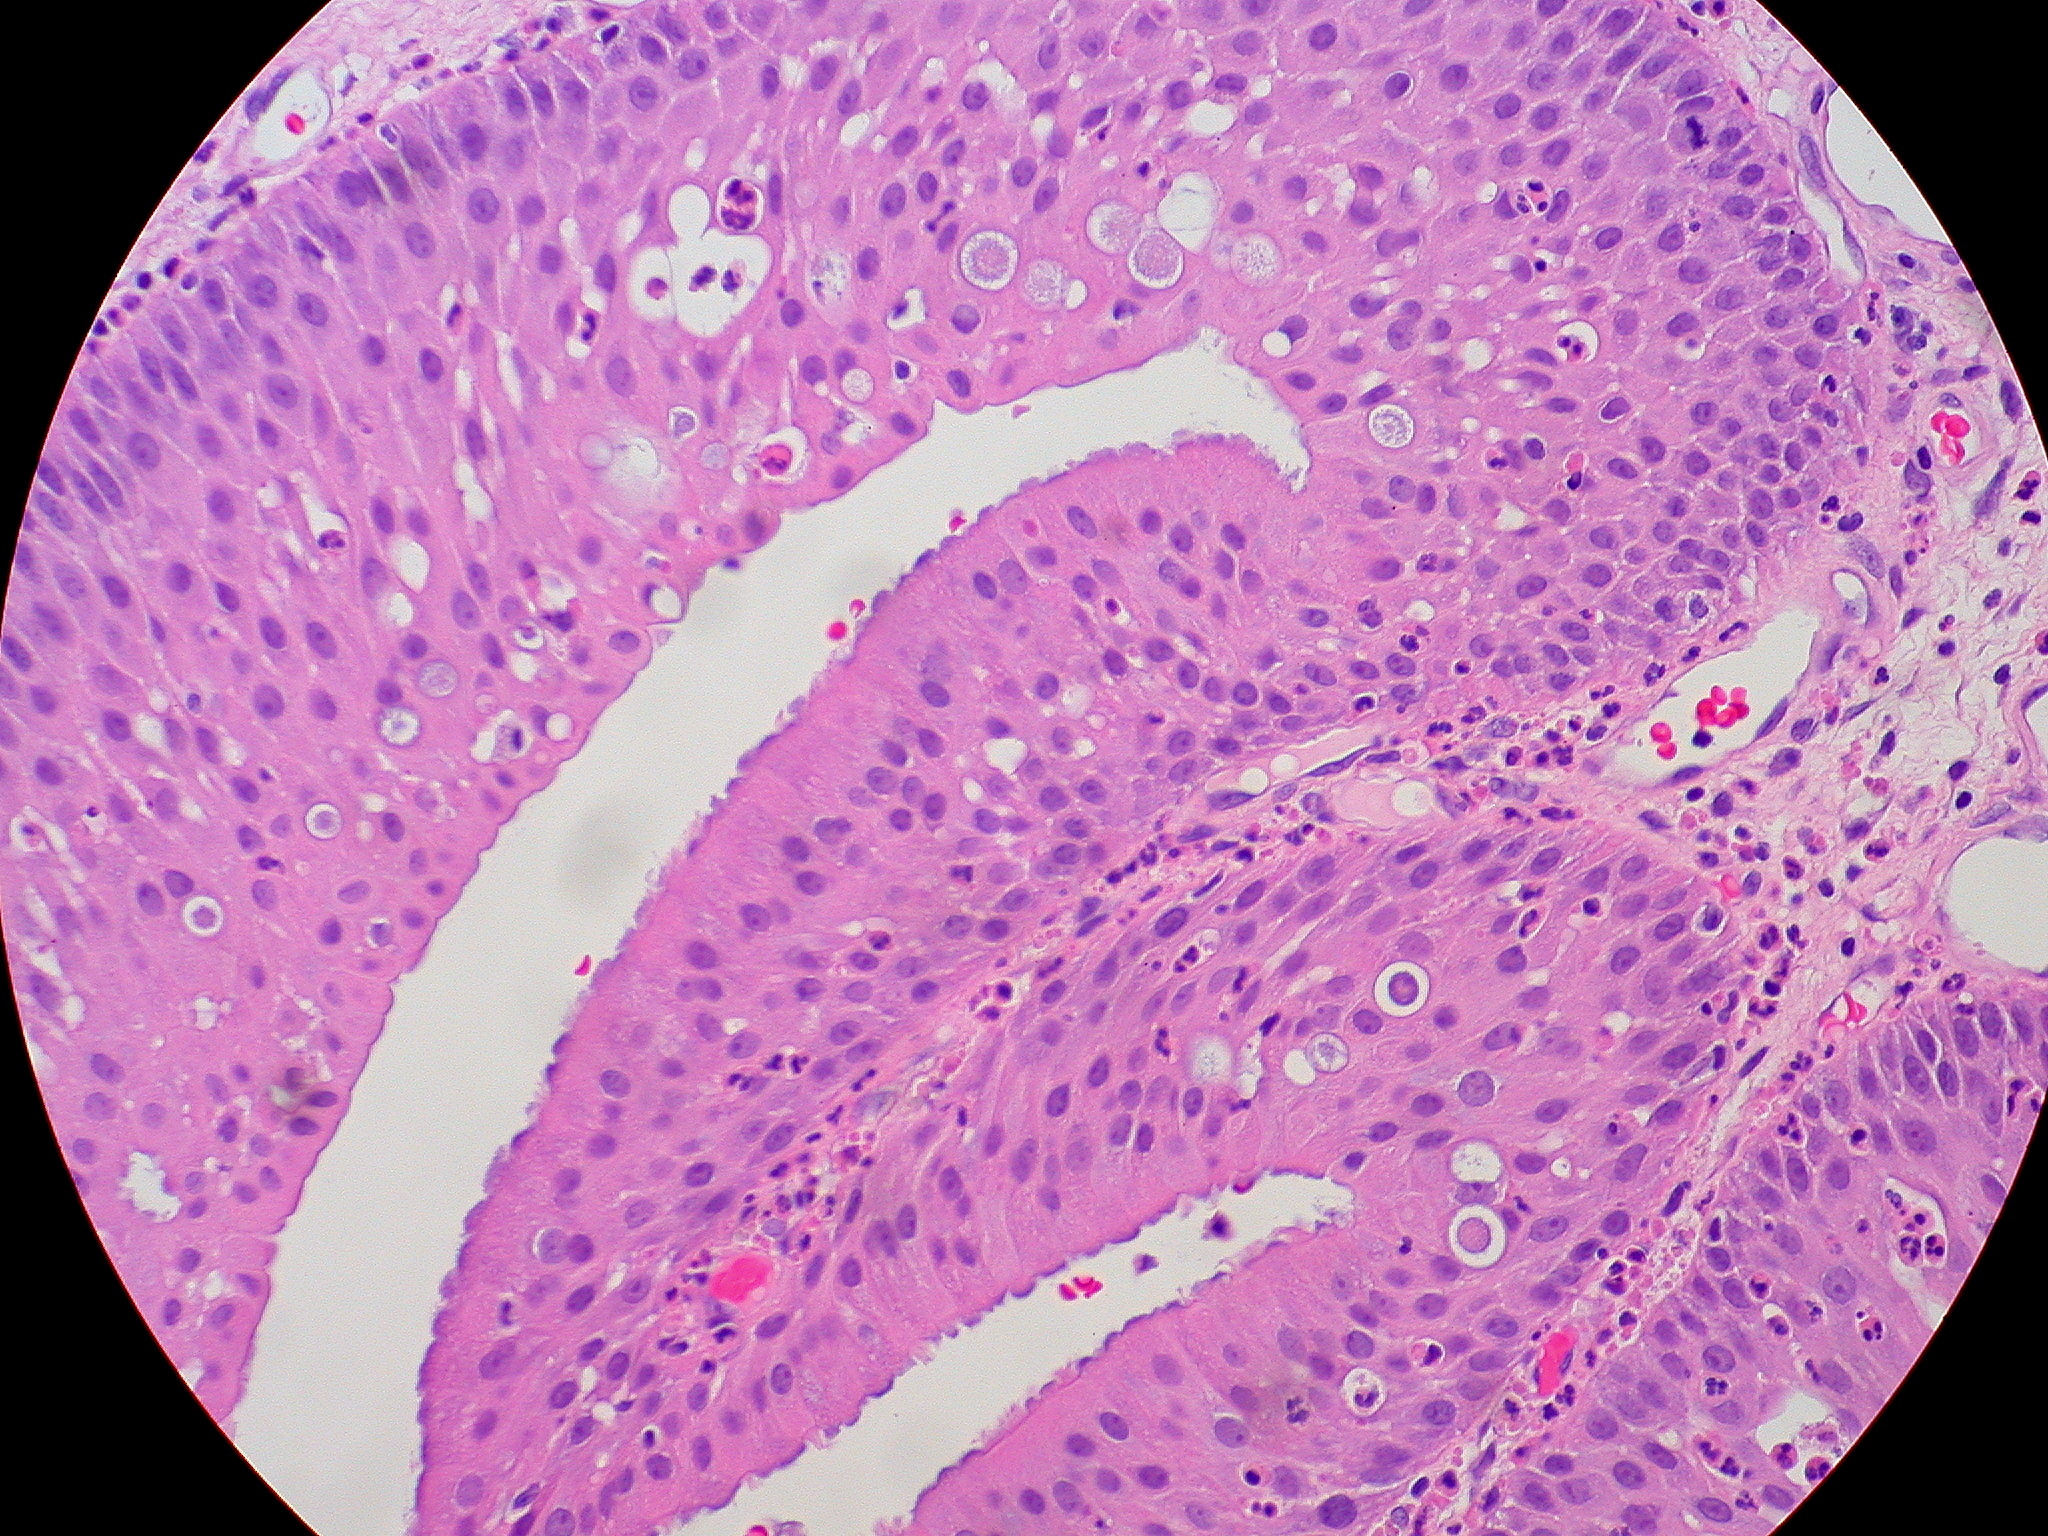 oncocytic papilloma